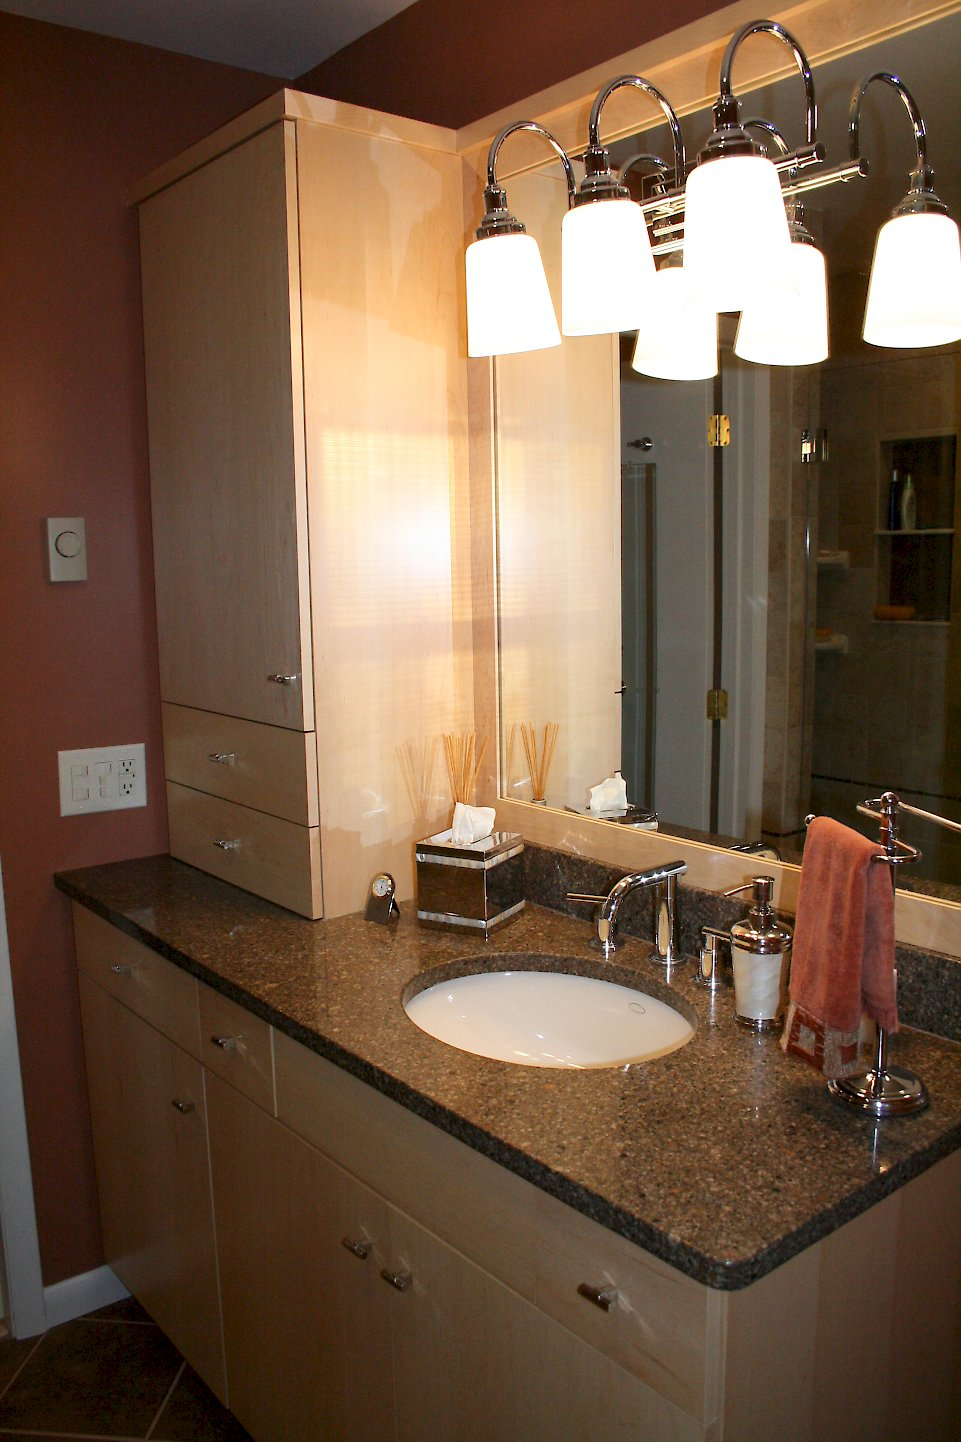 Cambria Quartz Ashford vanity top.